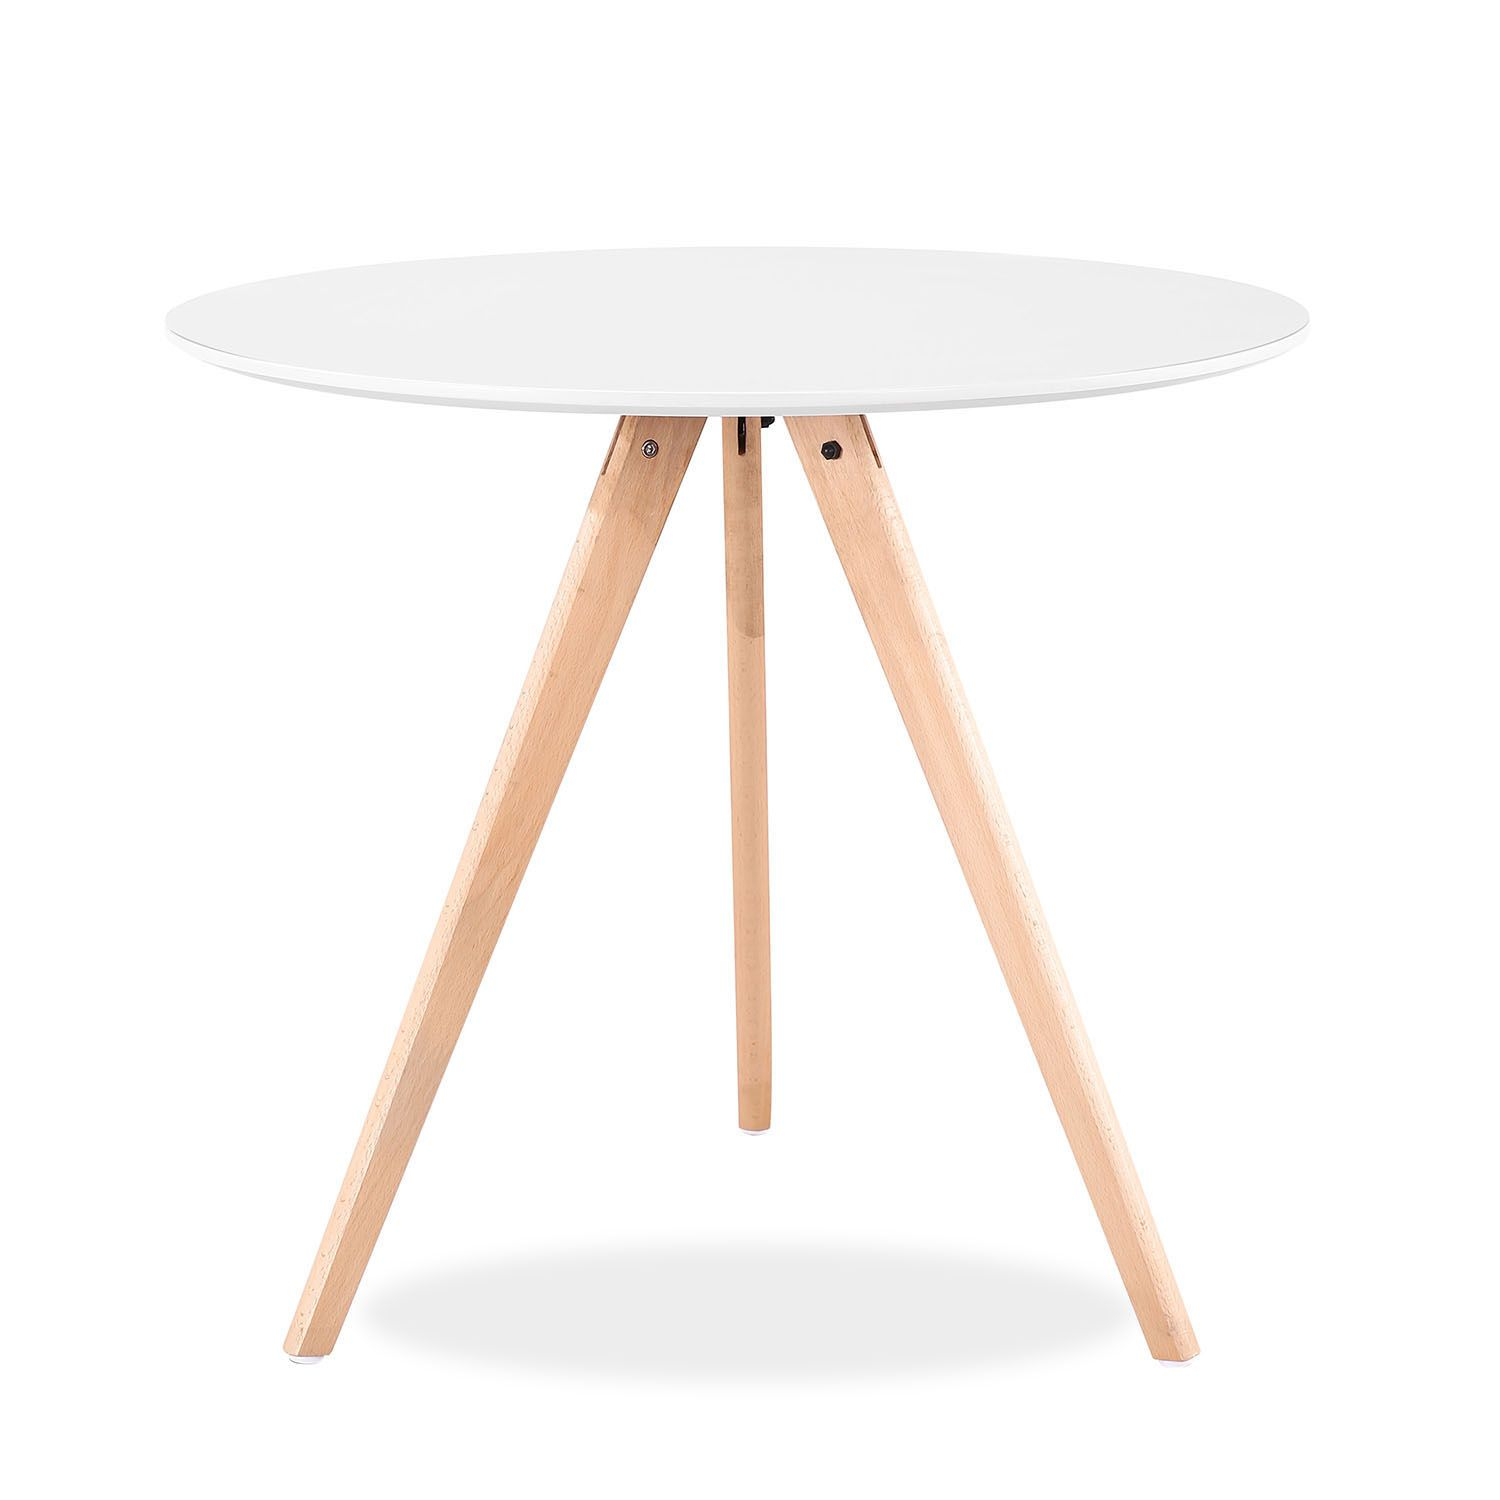 dining tables nordic MDF design beech wood legs